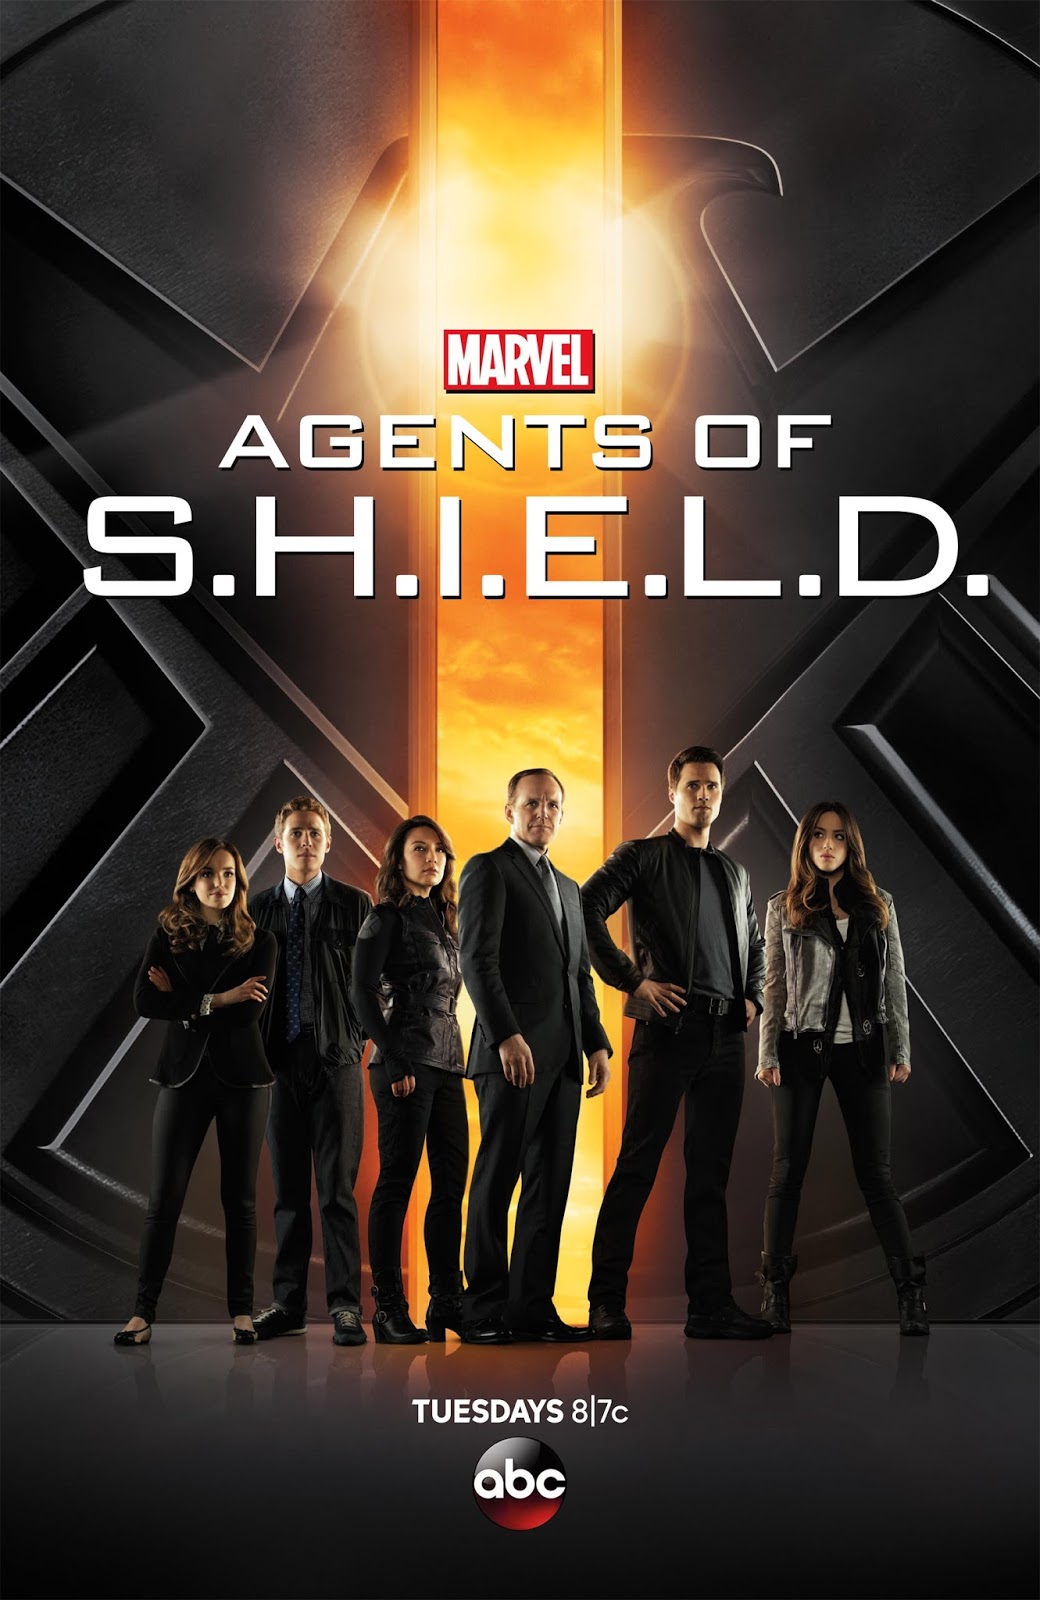 """Every """"Agents of S.H.I.E.L.D."""" Season Poster Ranked from Worst to Best -  The Geek Twins"""